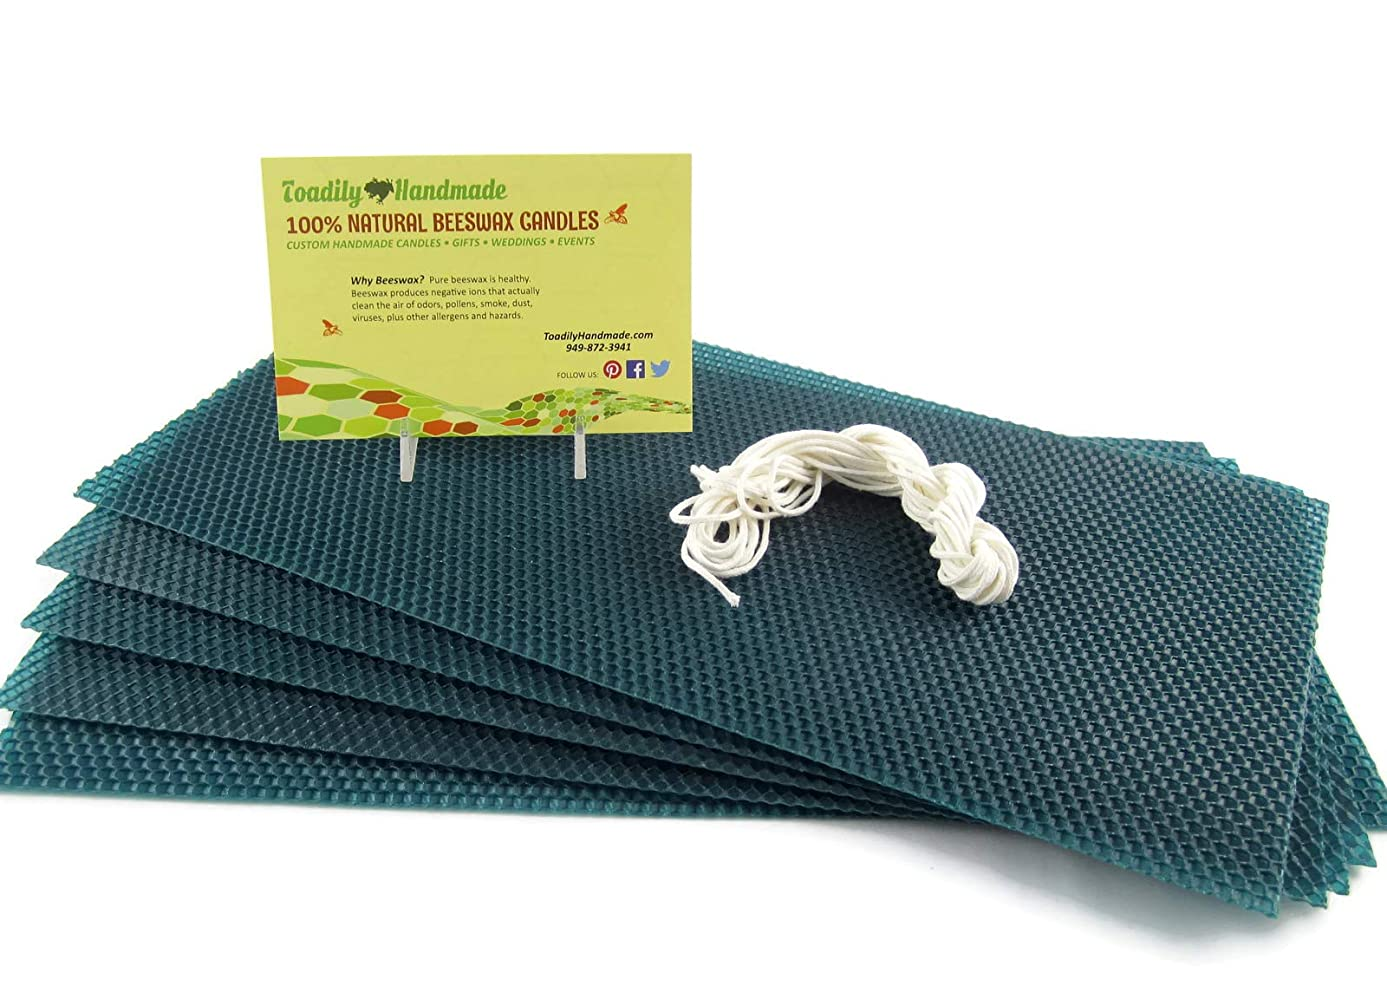 Make Your Own Beeswax Candle Starter Kit - Includes 5 Full Size 100% Beeswax Honeycomb Sheets in Forest Green and Approx. 6 Yards of Cotton Wick. Each Beeswax Sheet Measures Approx. 8